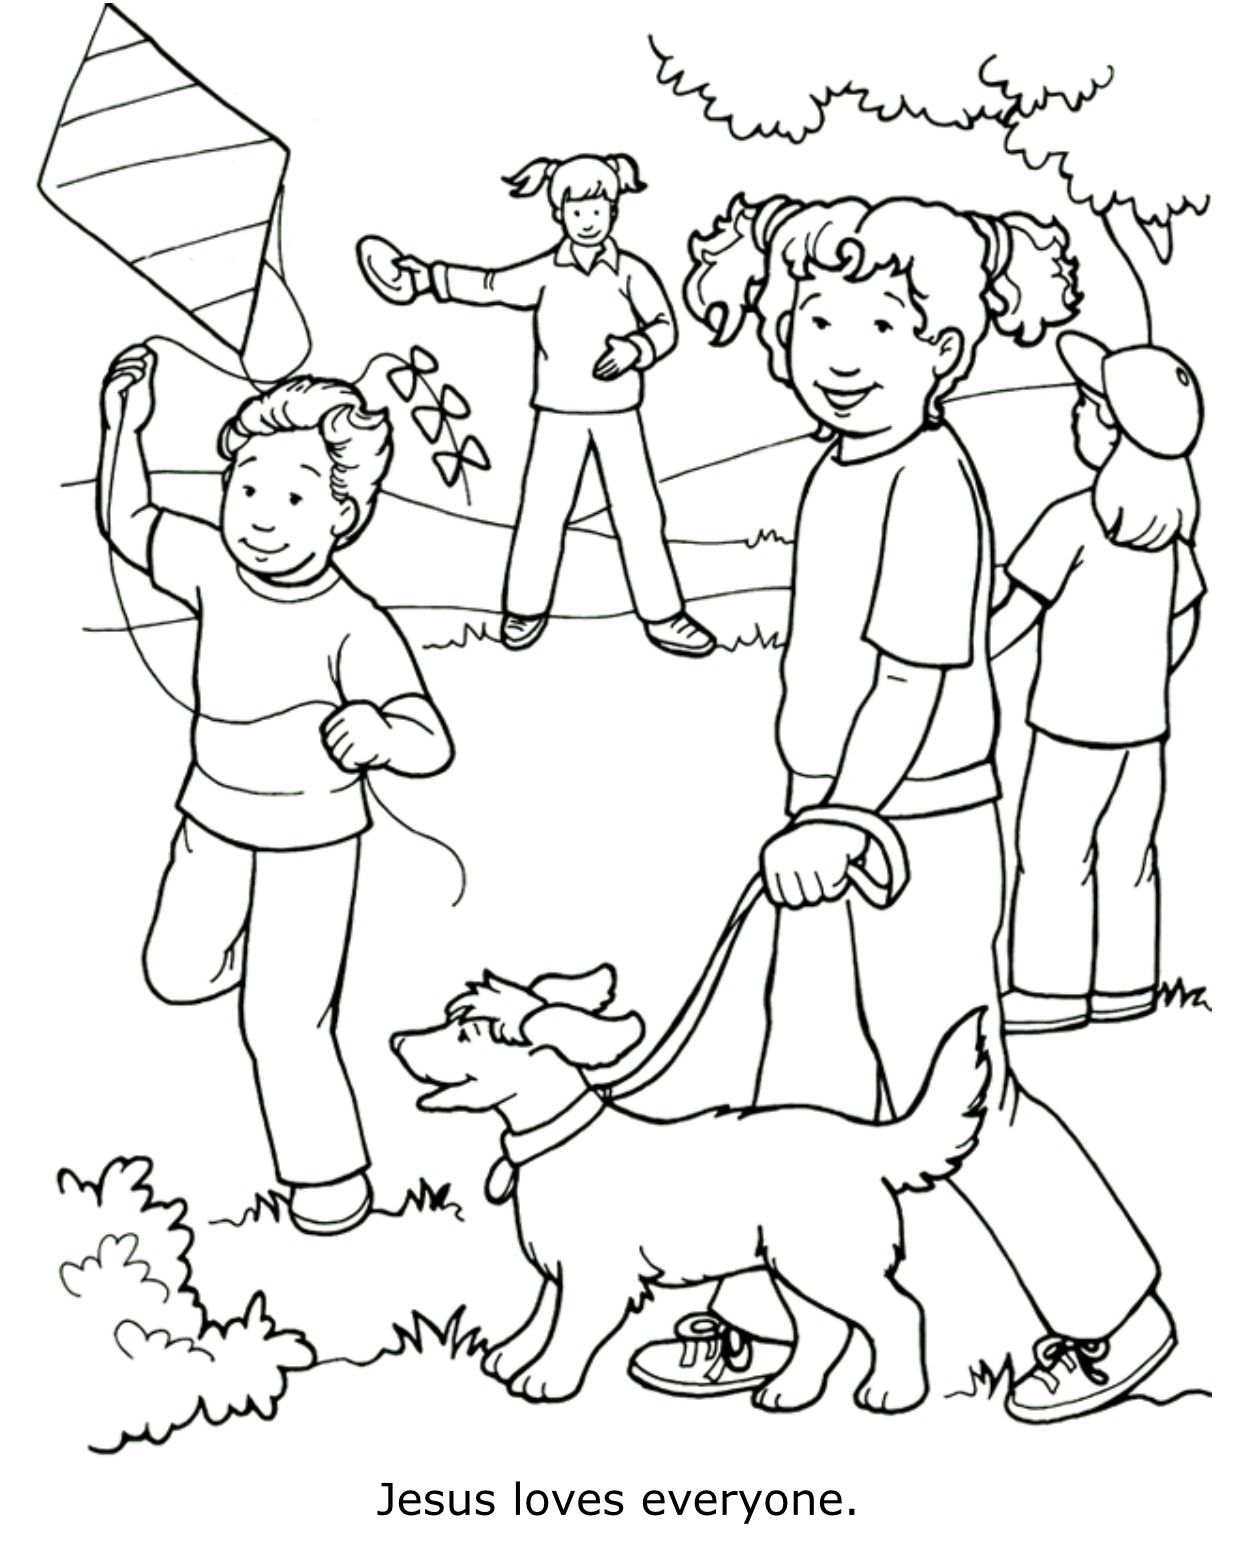 Jesus Loves Everyone Coloring Page Bible Coloring Pages Sunday School Coloring Pages Jesus Coloring Pages